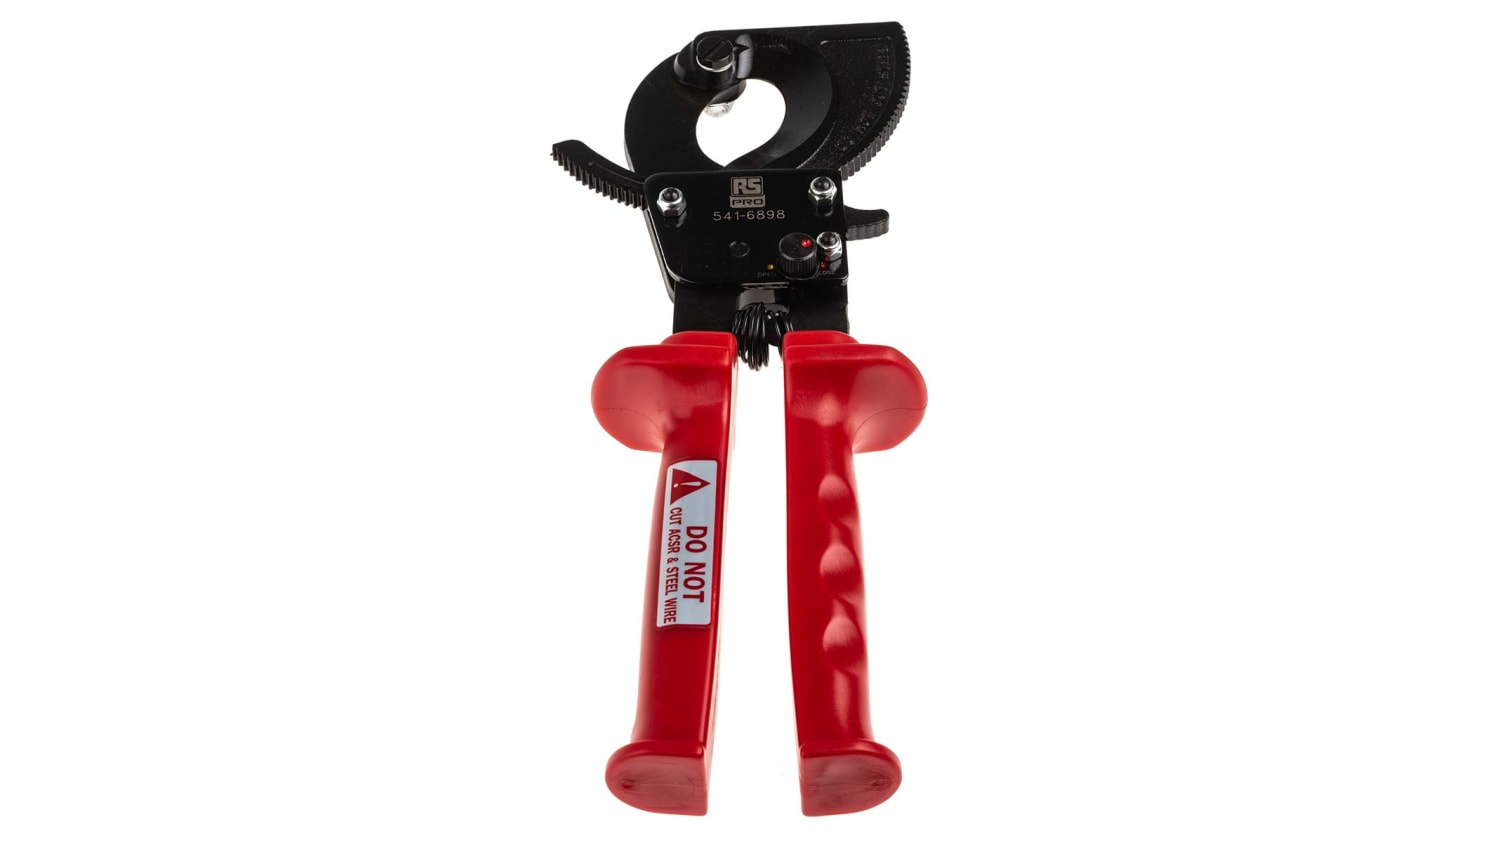 Rs Pro 250 Mm Ratchet Cable Cutter Rs Components